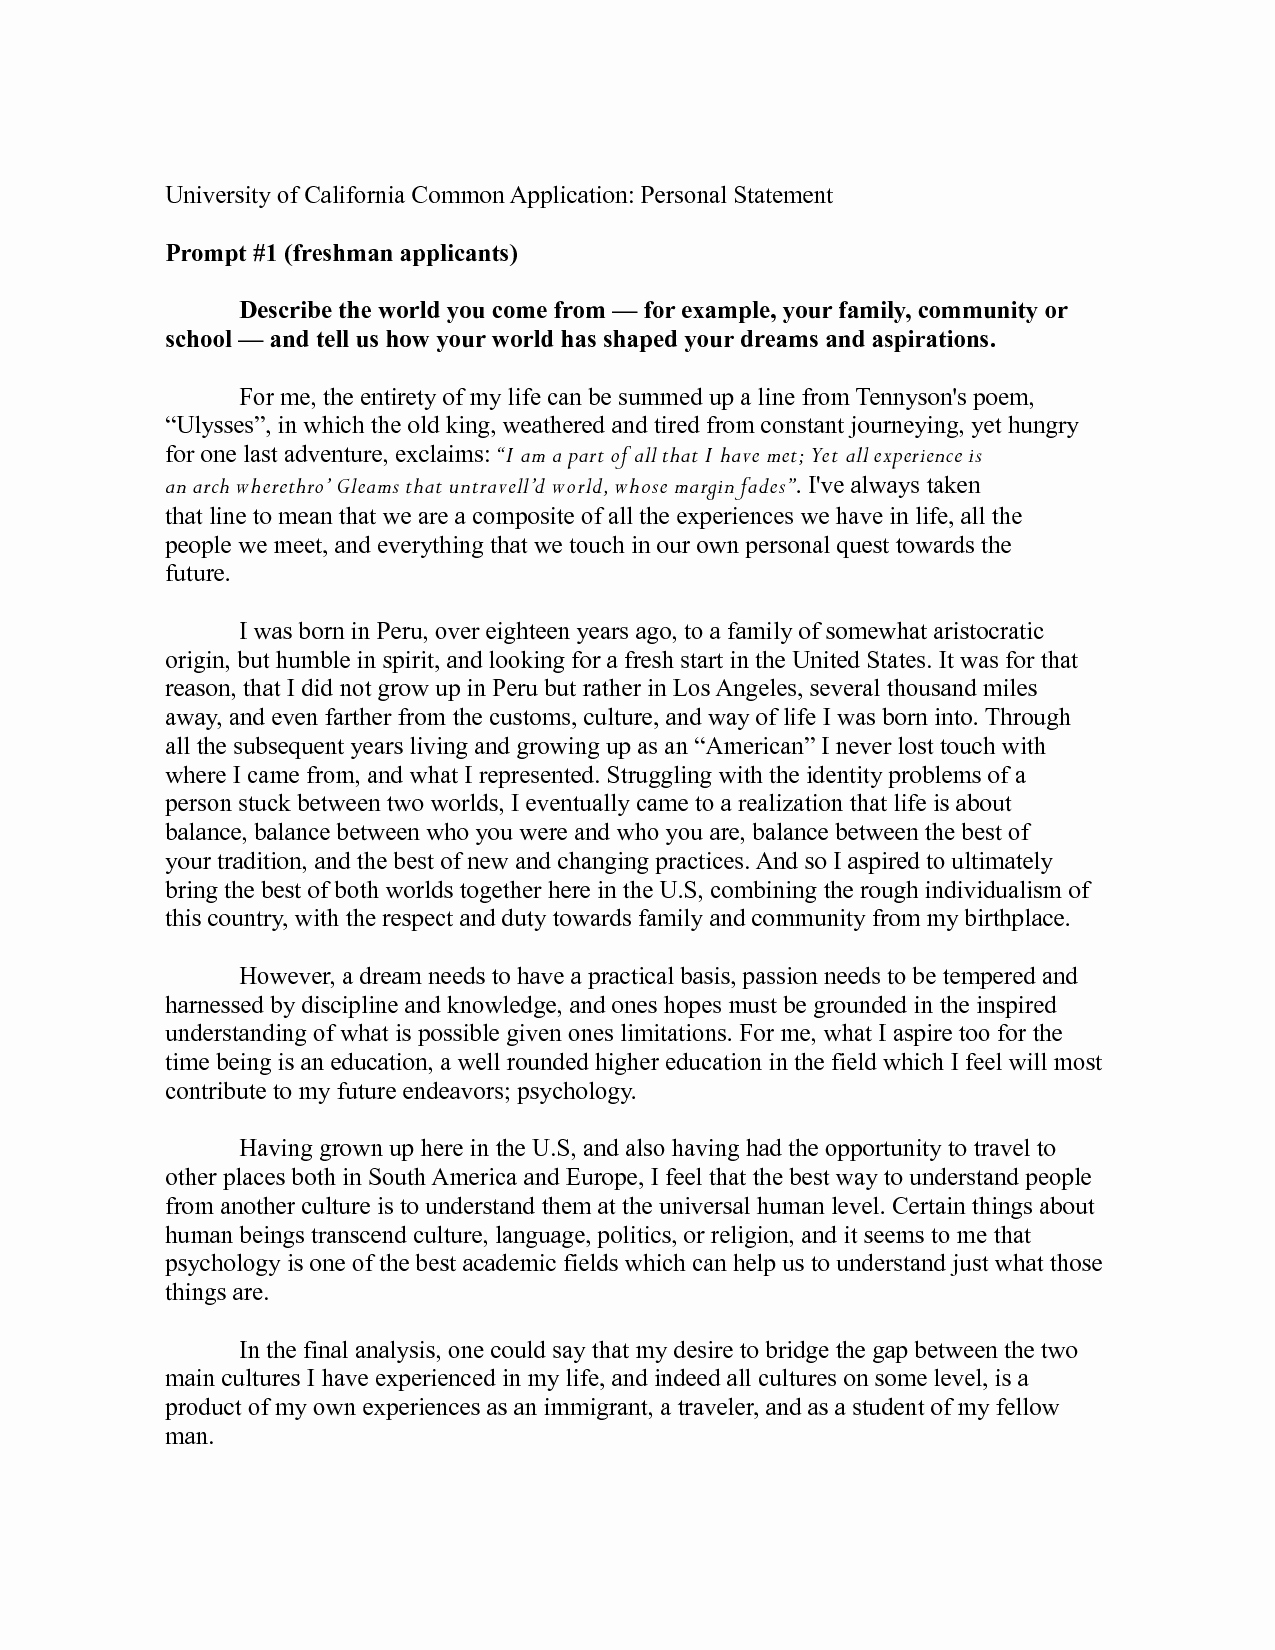 Academic Personal Statement Example Best Of Statement Application Personal Statement